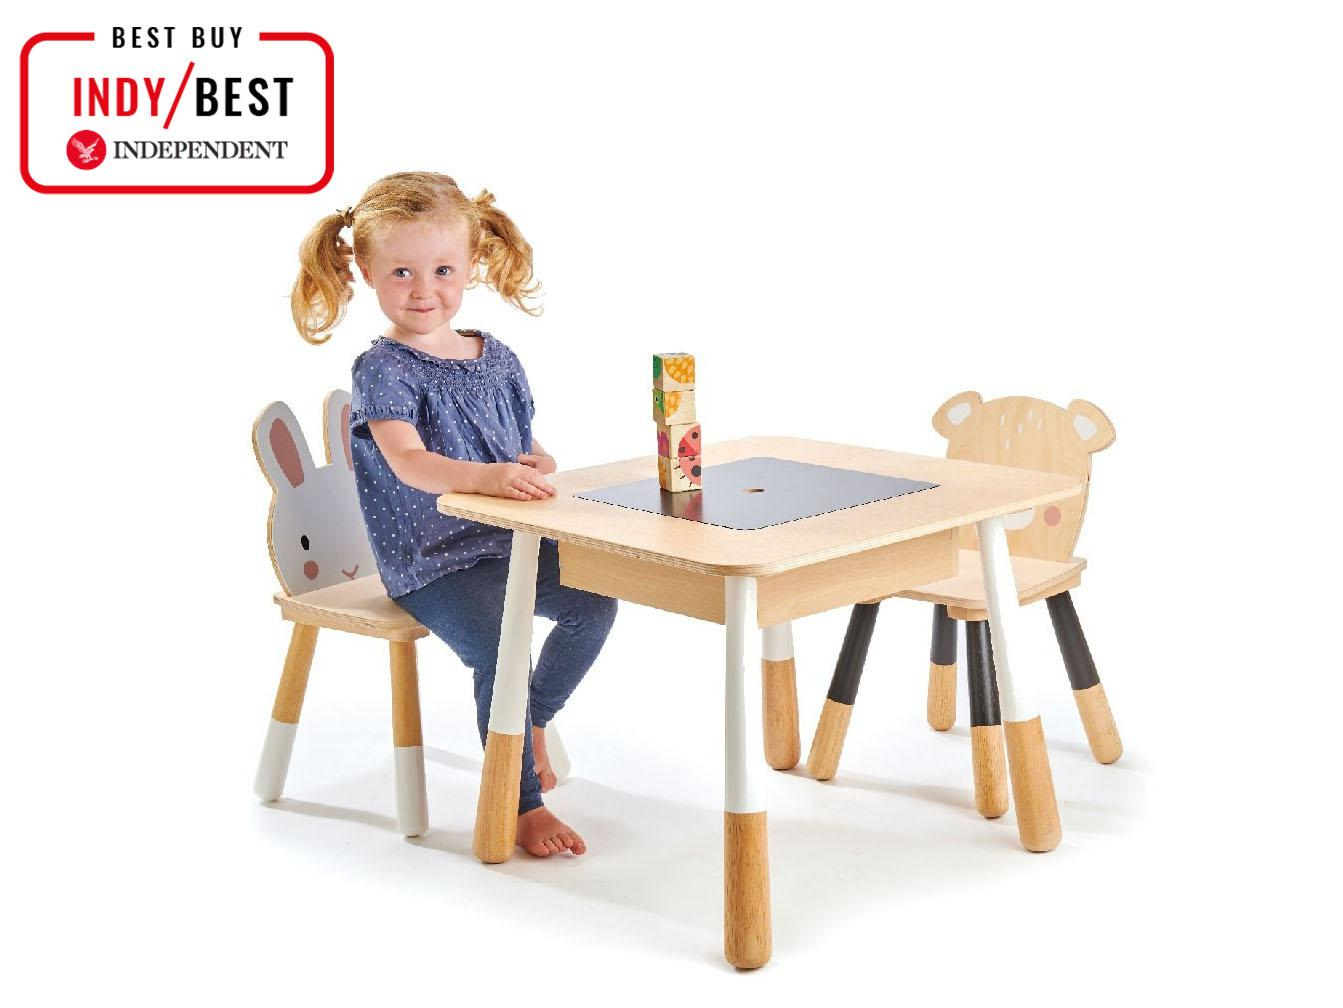 Baby Chair Home Childrens Writing Chair Chair Solid Wood Seat Desk Stool Popular Kindergarten Small Bench Goods Of Every Description Are Available Furniture